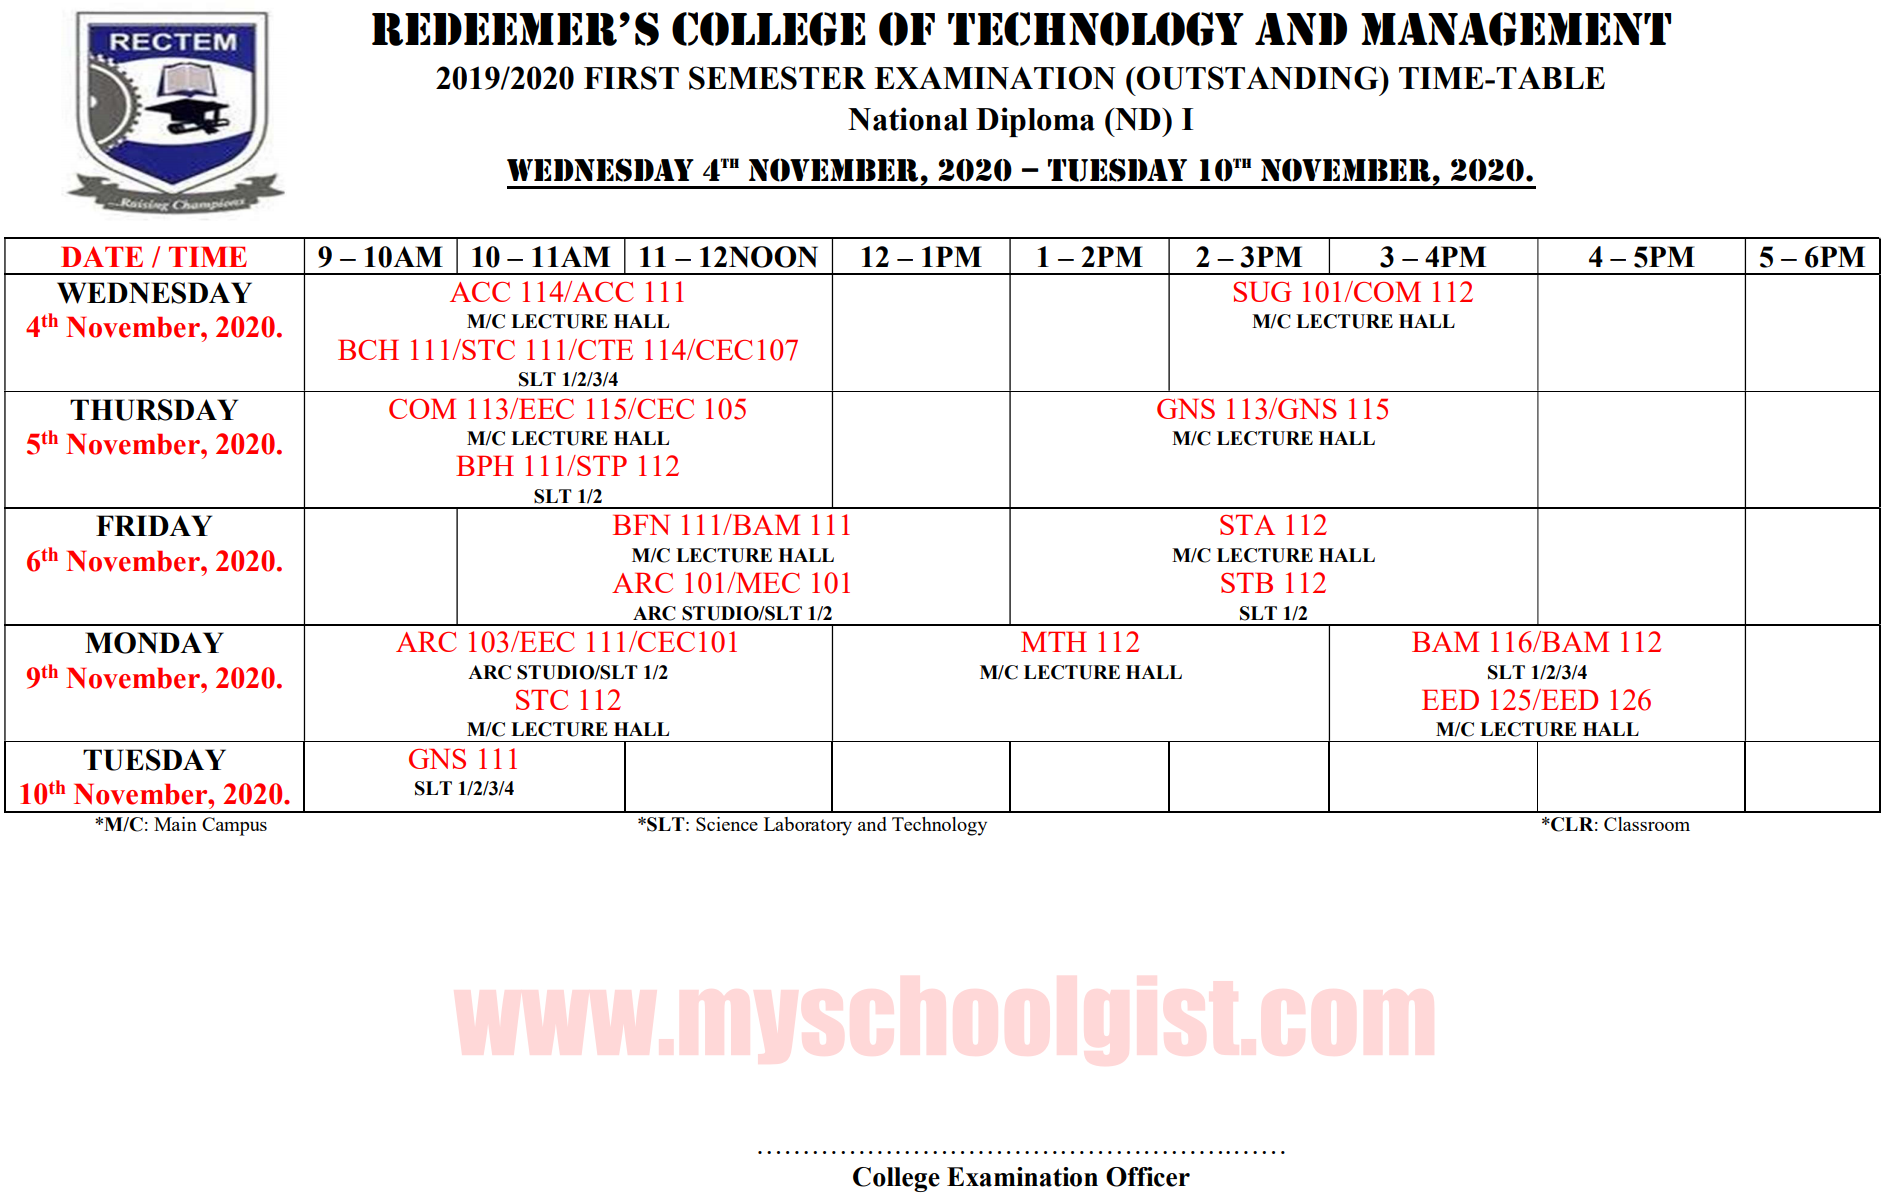 Redeemer's College of Technology and Management (RECTEM) Exam Timetable